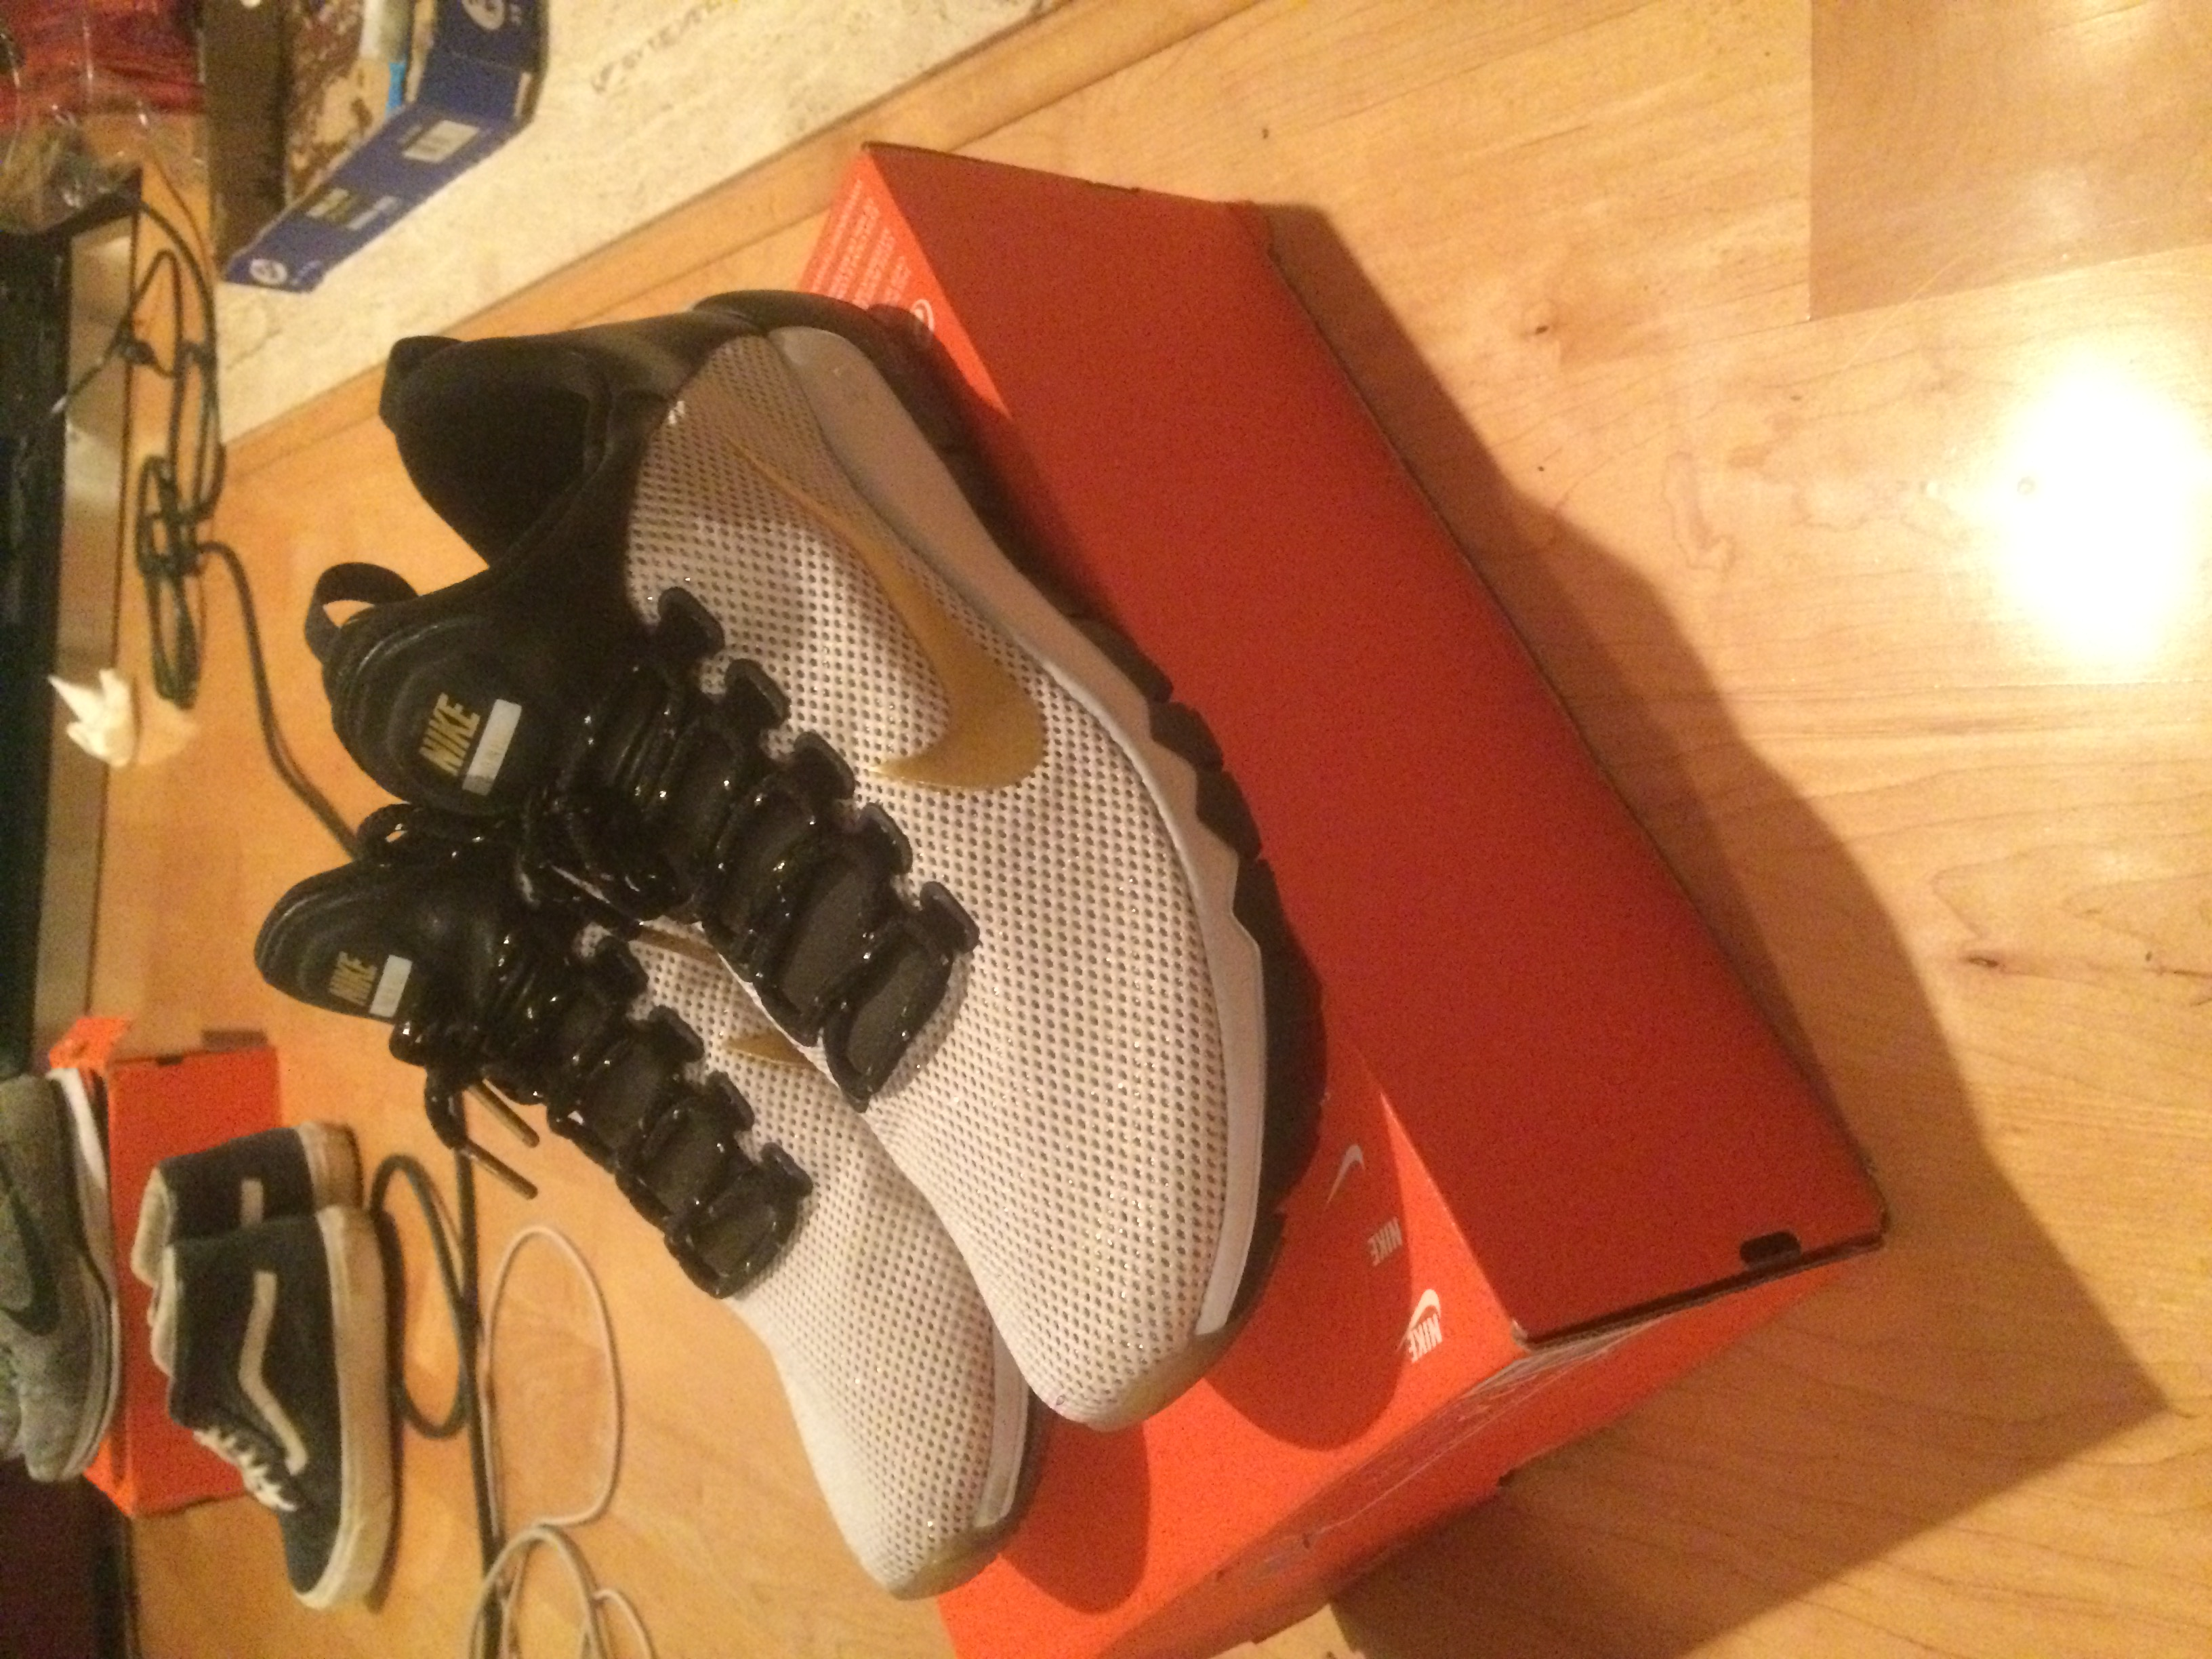 Free Trainer 5.0 Paid in Full